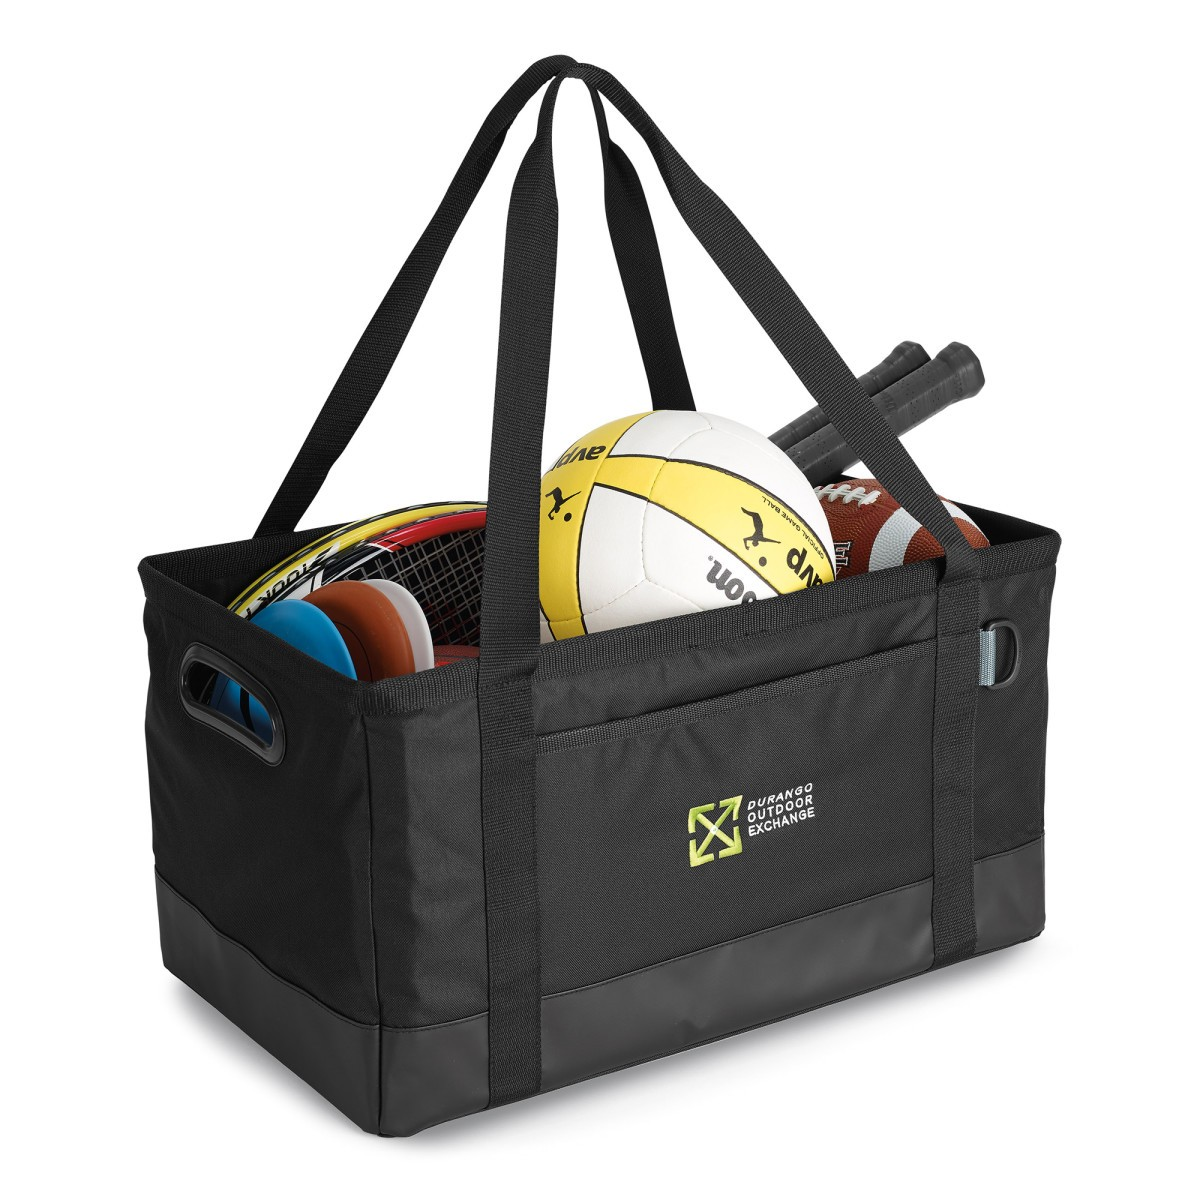 Life in Motion Deluxe Utility Tote